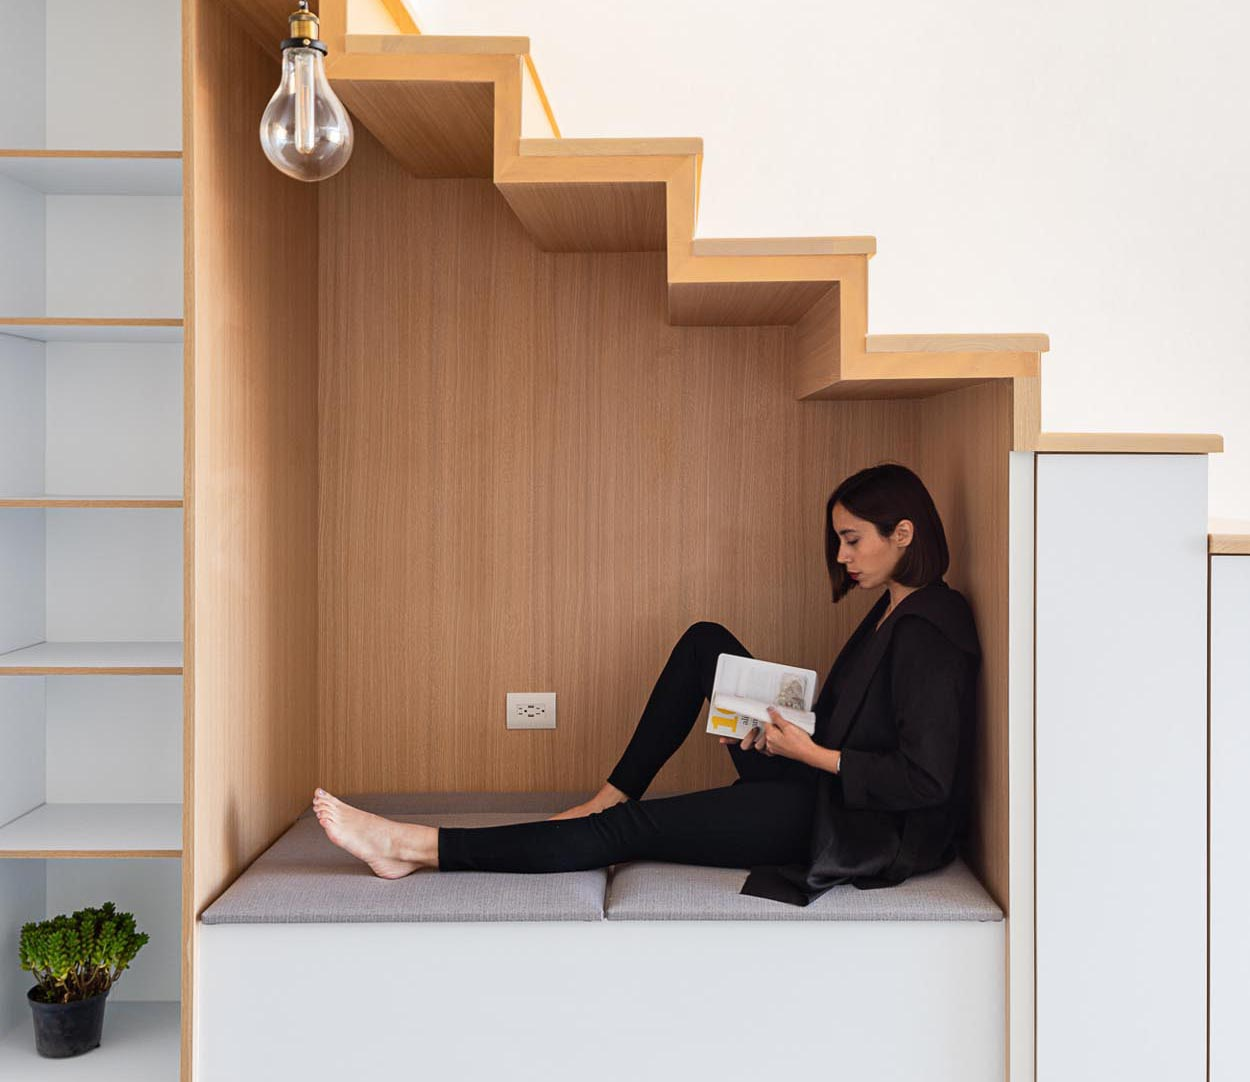 An under-stair wood lined nook has bench seating with an upholstered cushion, as well as an outlet and a nearby pendant light. To the left of the nook is an open shelving unit, while to the right, are small cabinets.